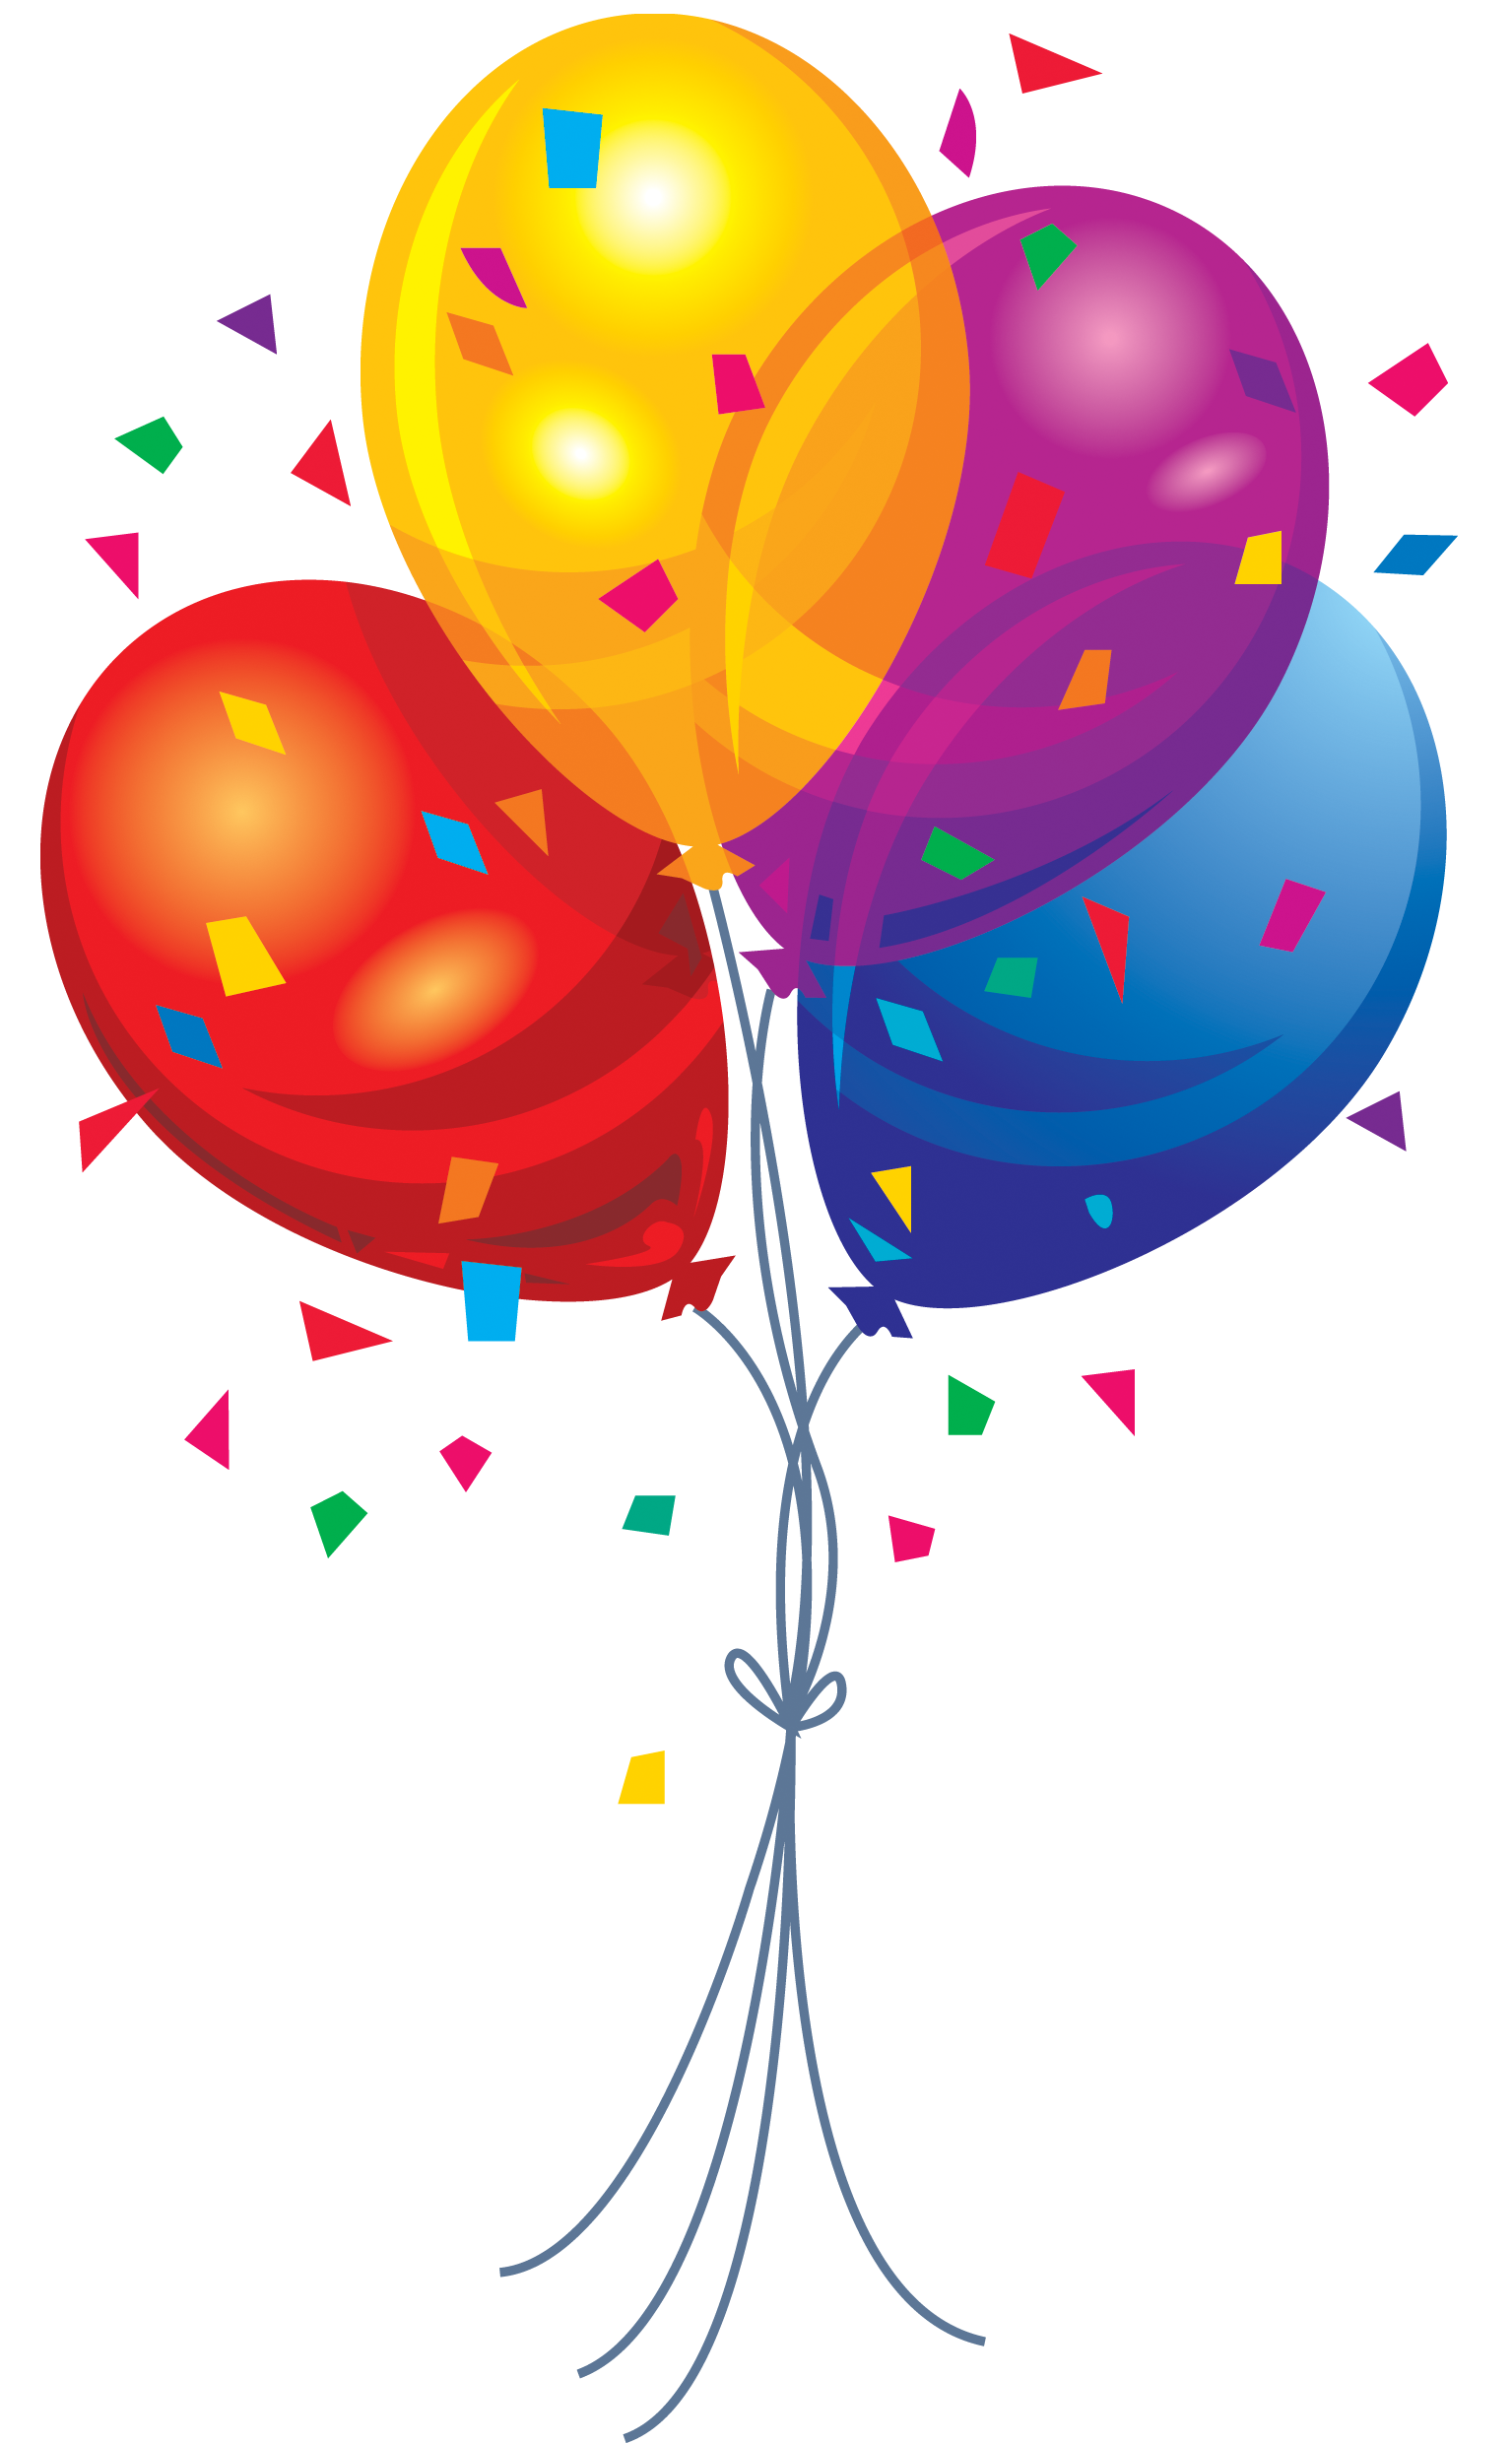 Happy birthday balloons png transparent background. Balloon images free picture